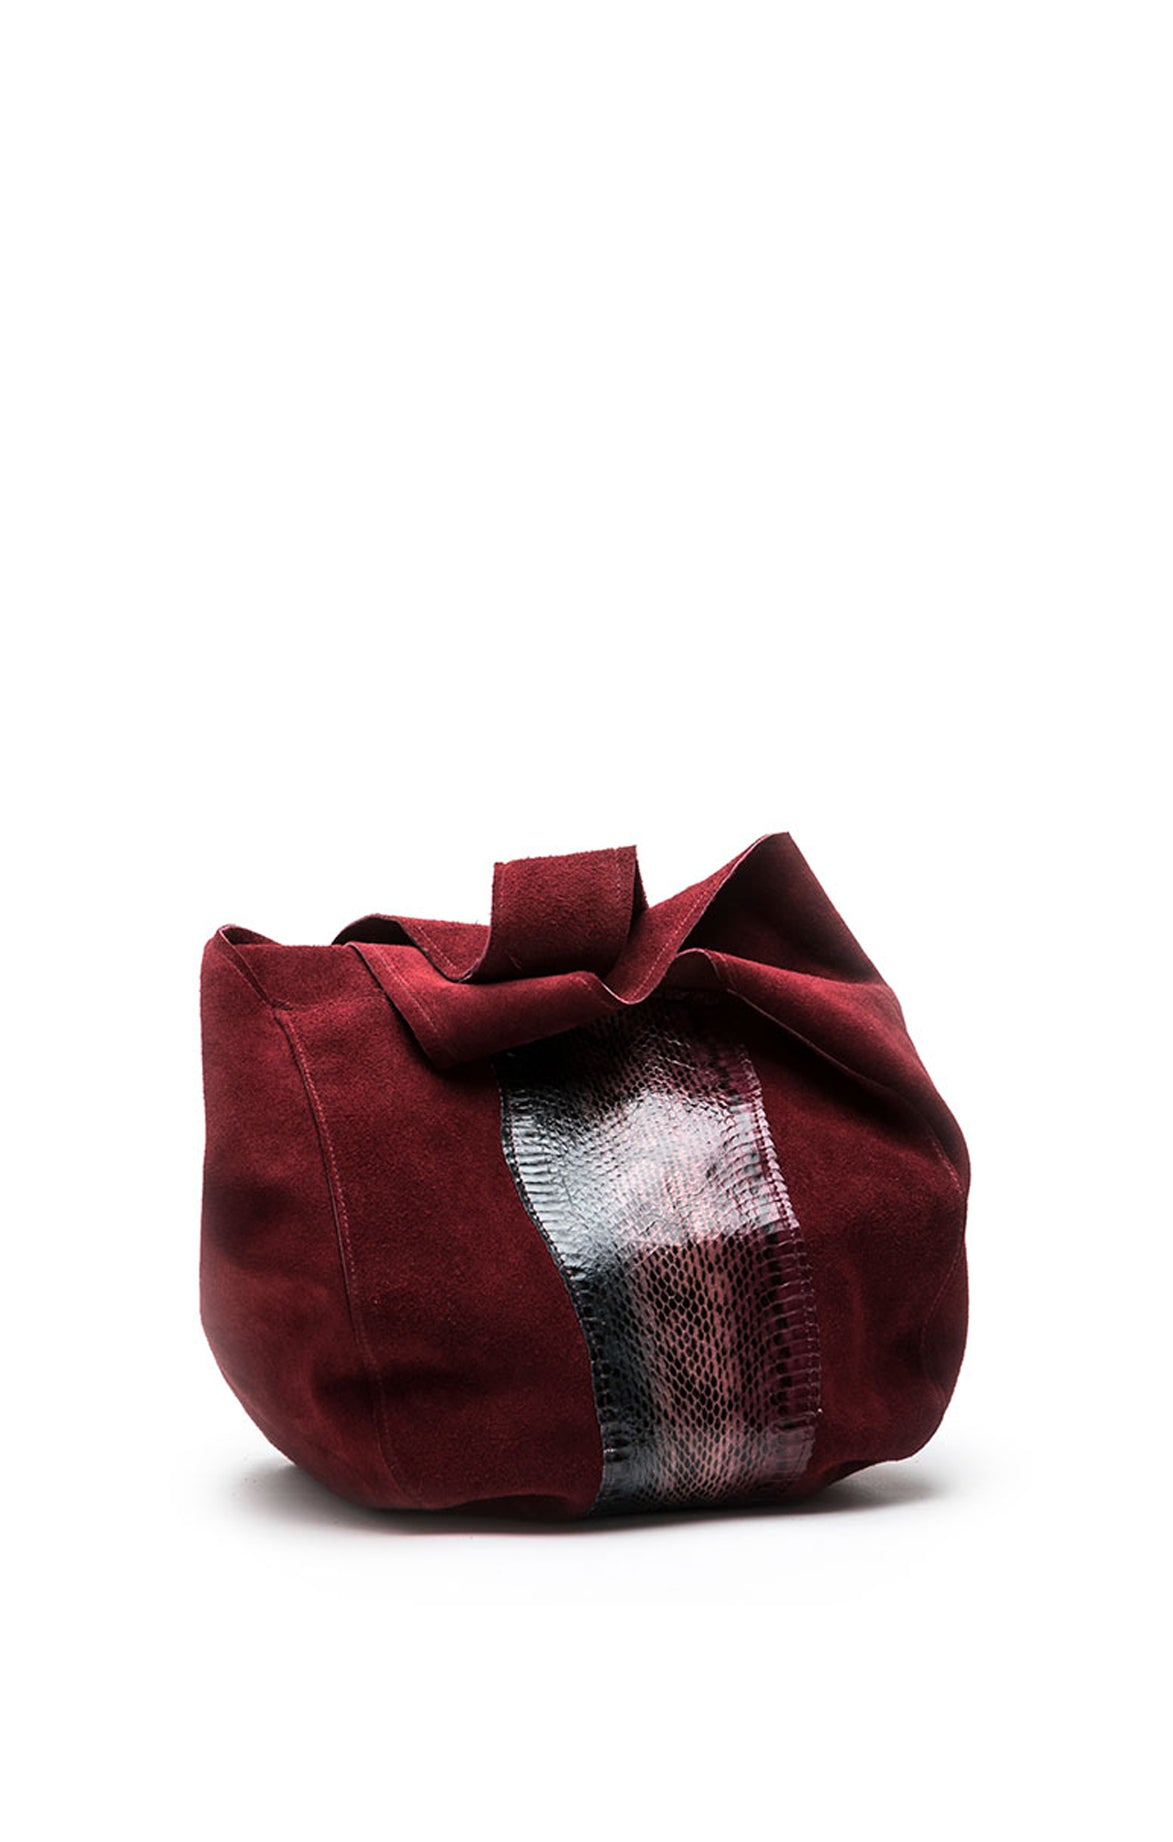 Red Suede Snake bag